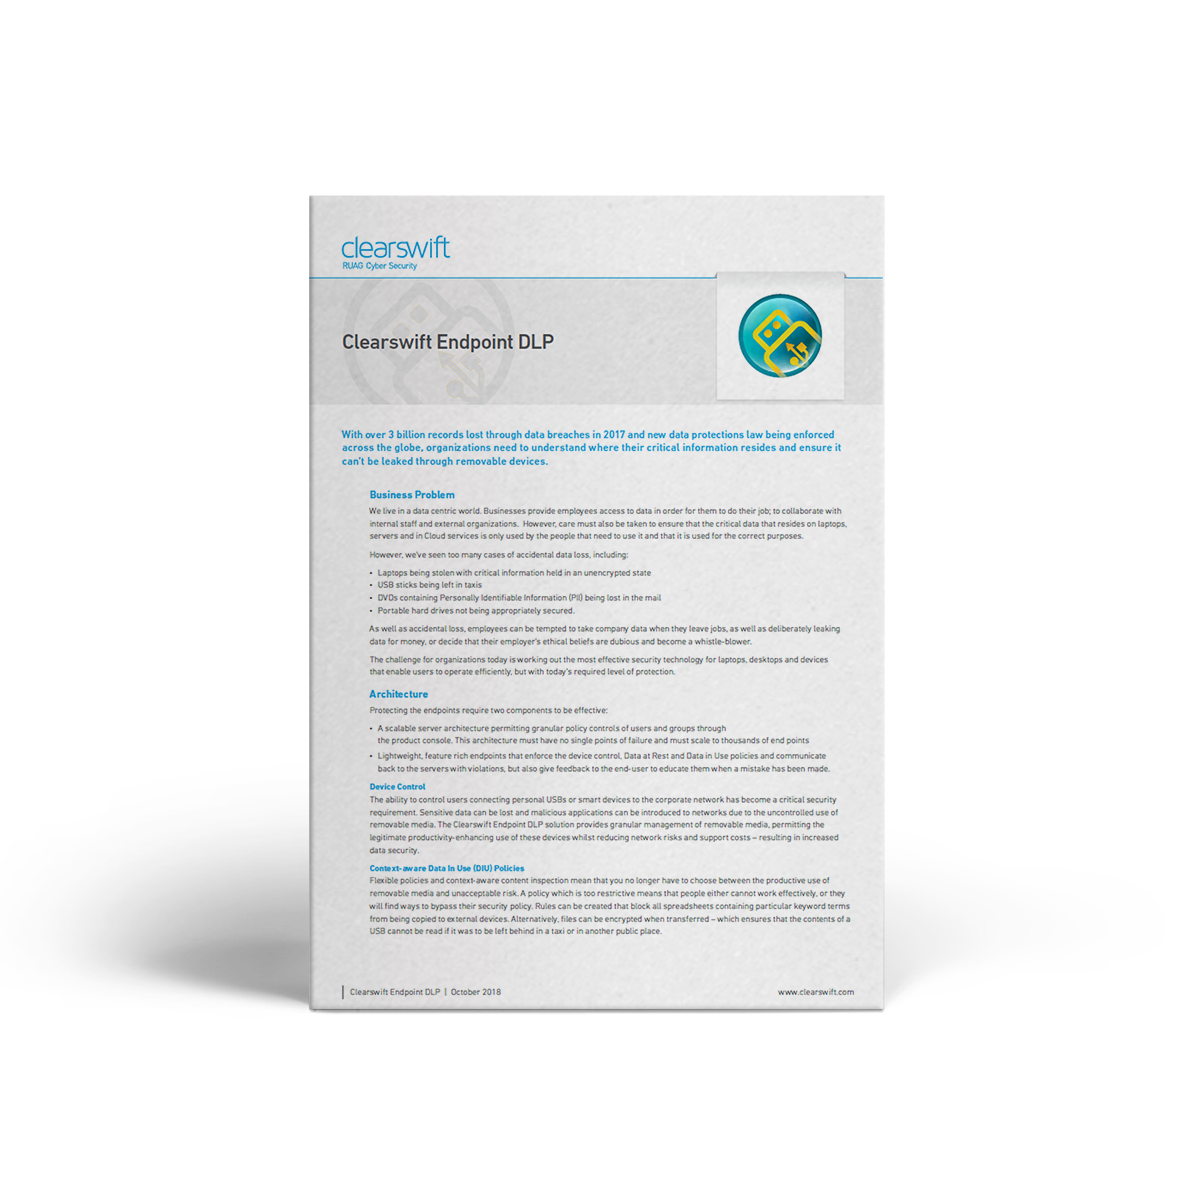 Clearswift CED datasheet